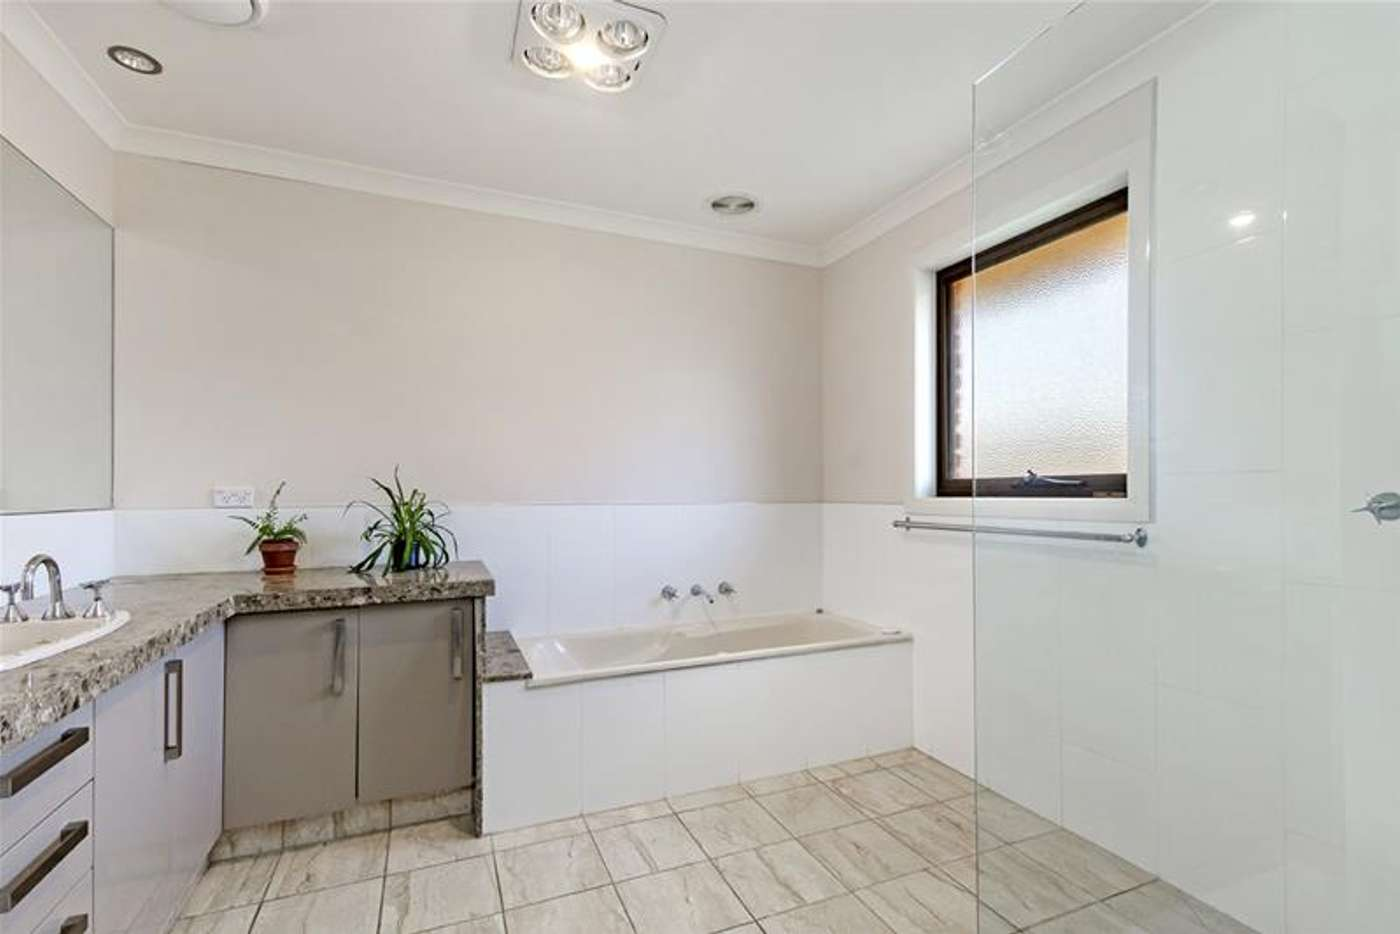 Sixth view of Homely house listing, Unit 2/4 Wicking Place, Warrnambool VIC 3280